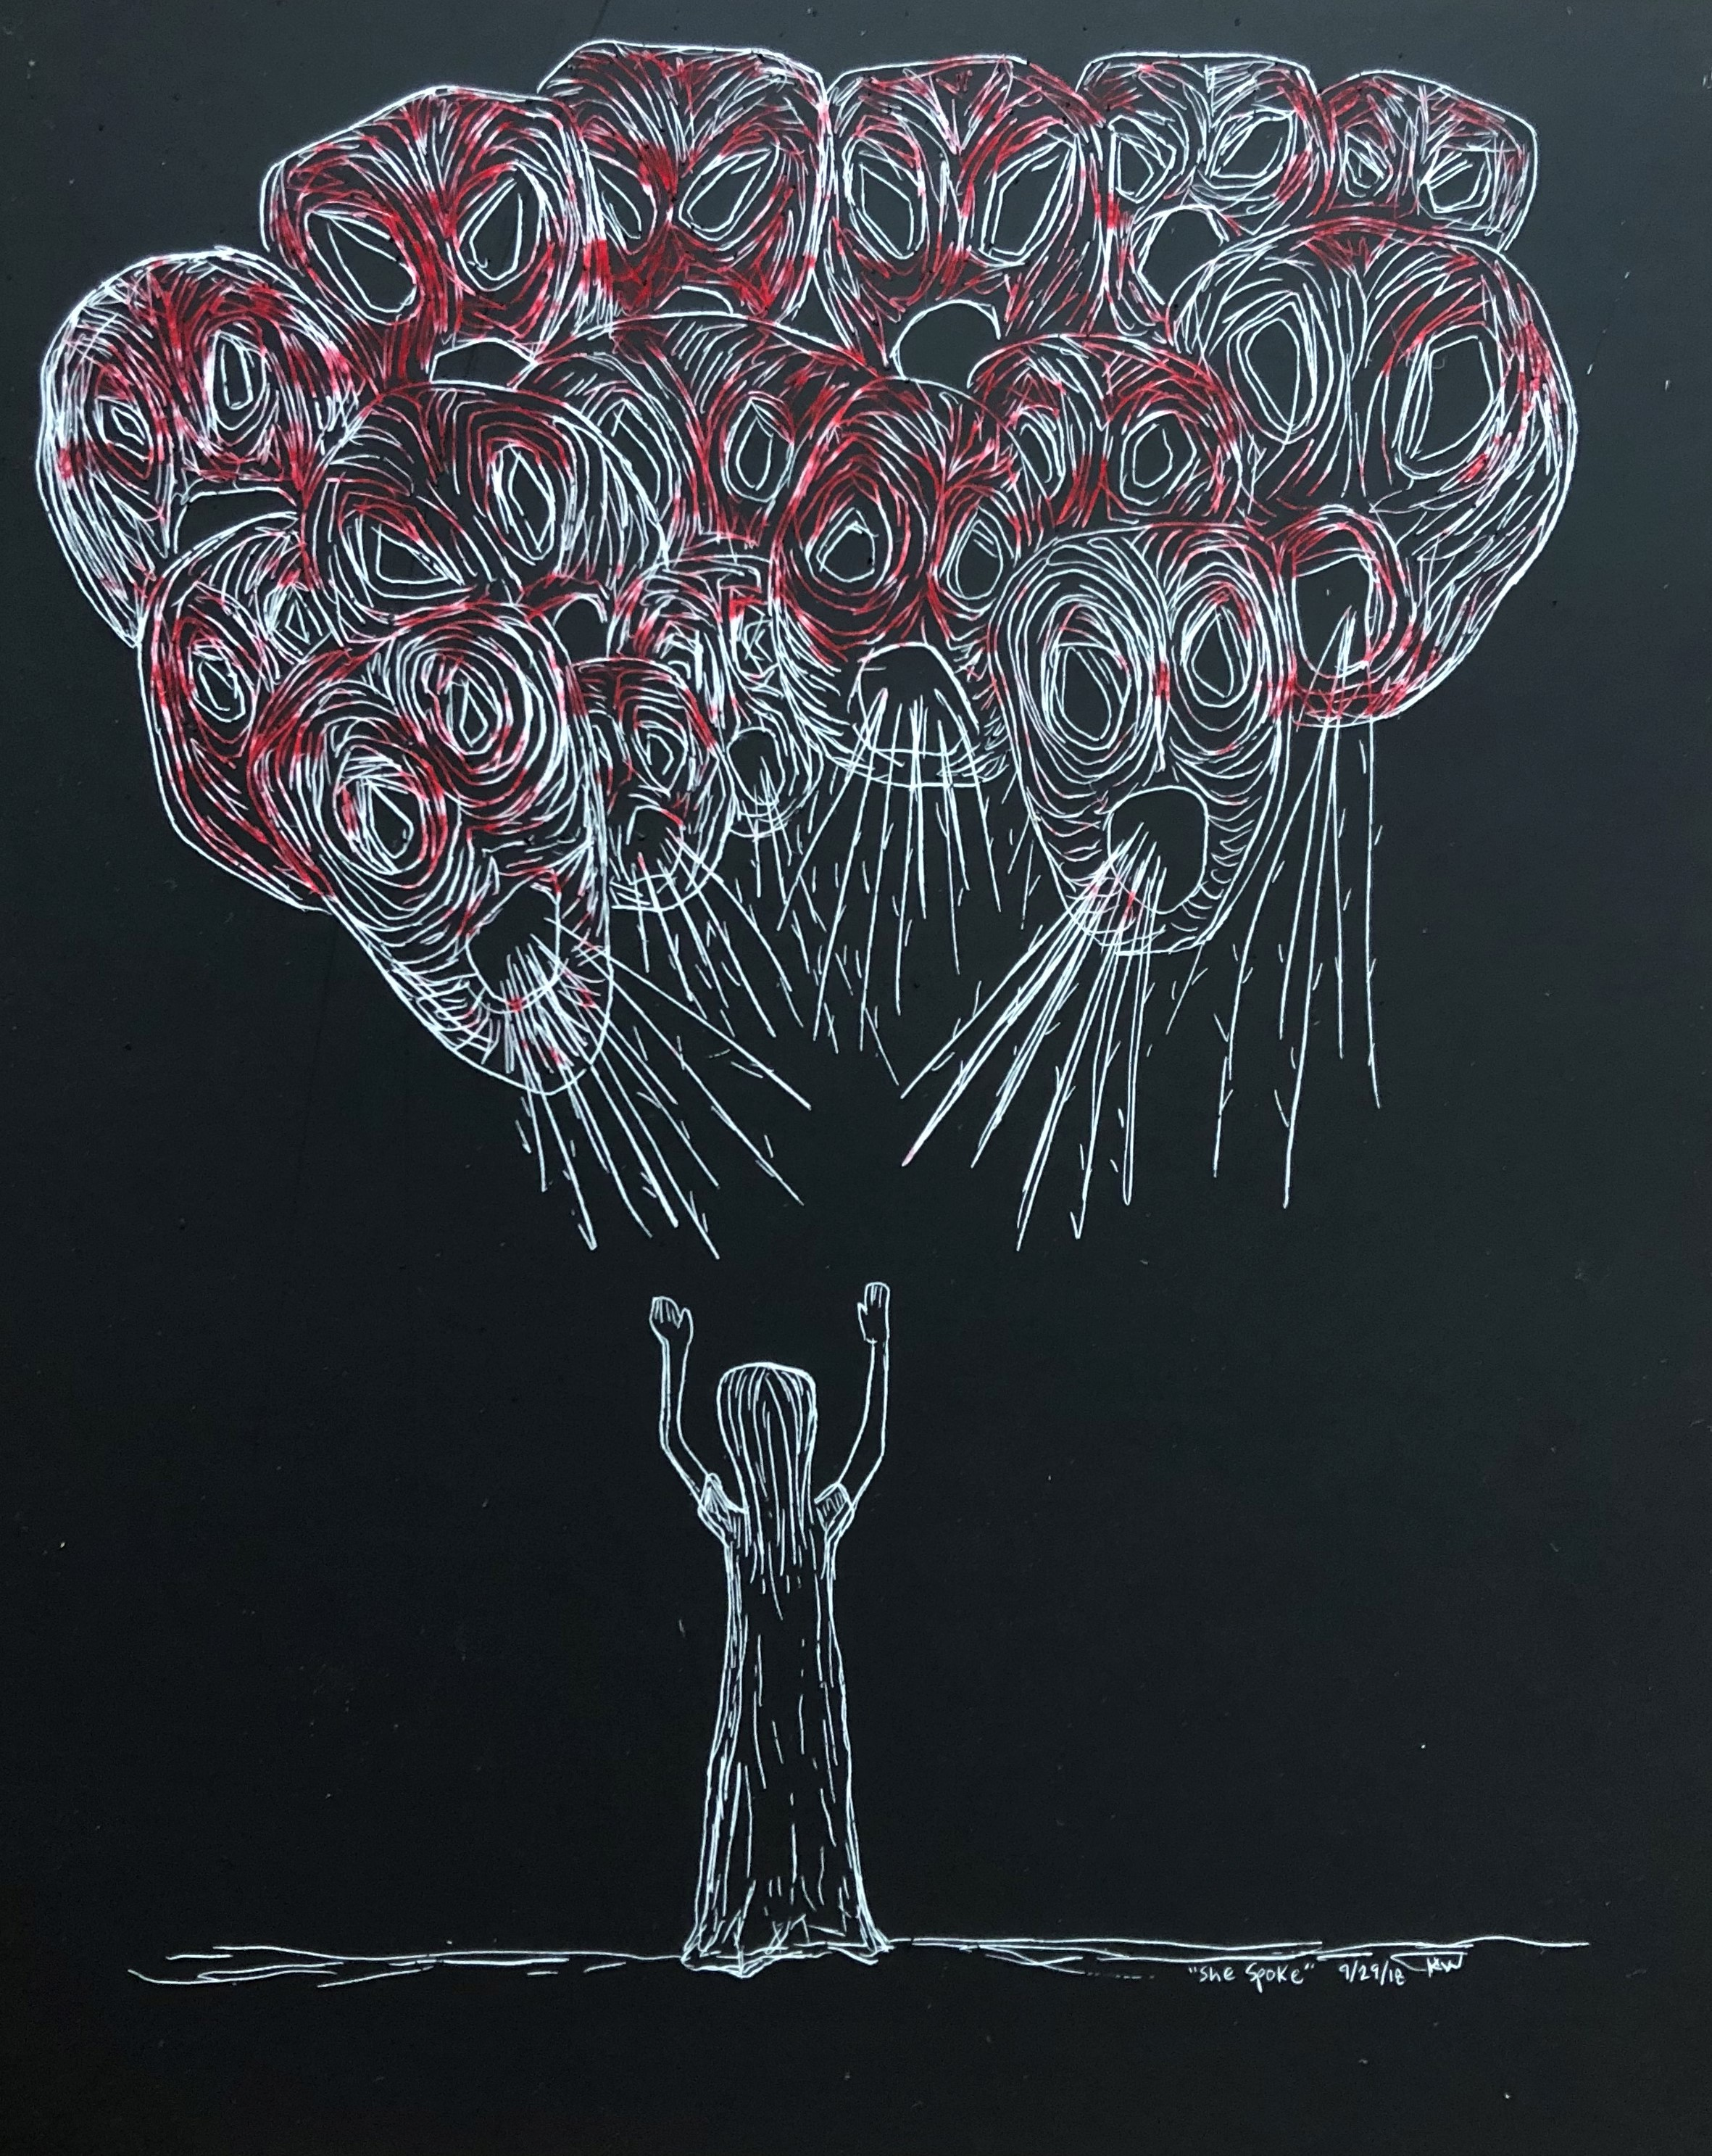 """She Spoke, 2018 5"""" x 6""""   They screamed so no one could hear."""